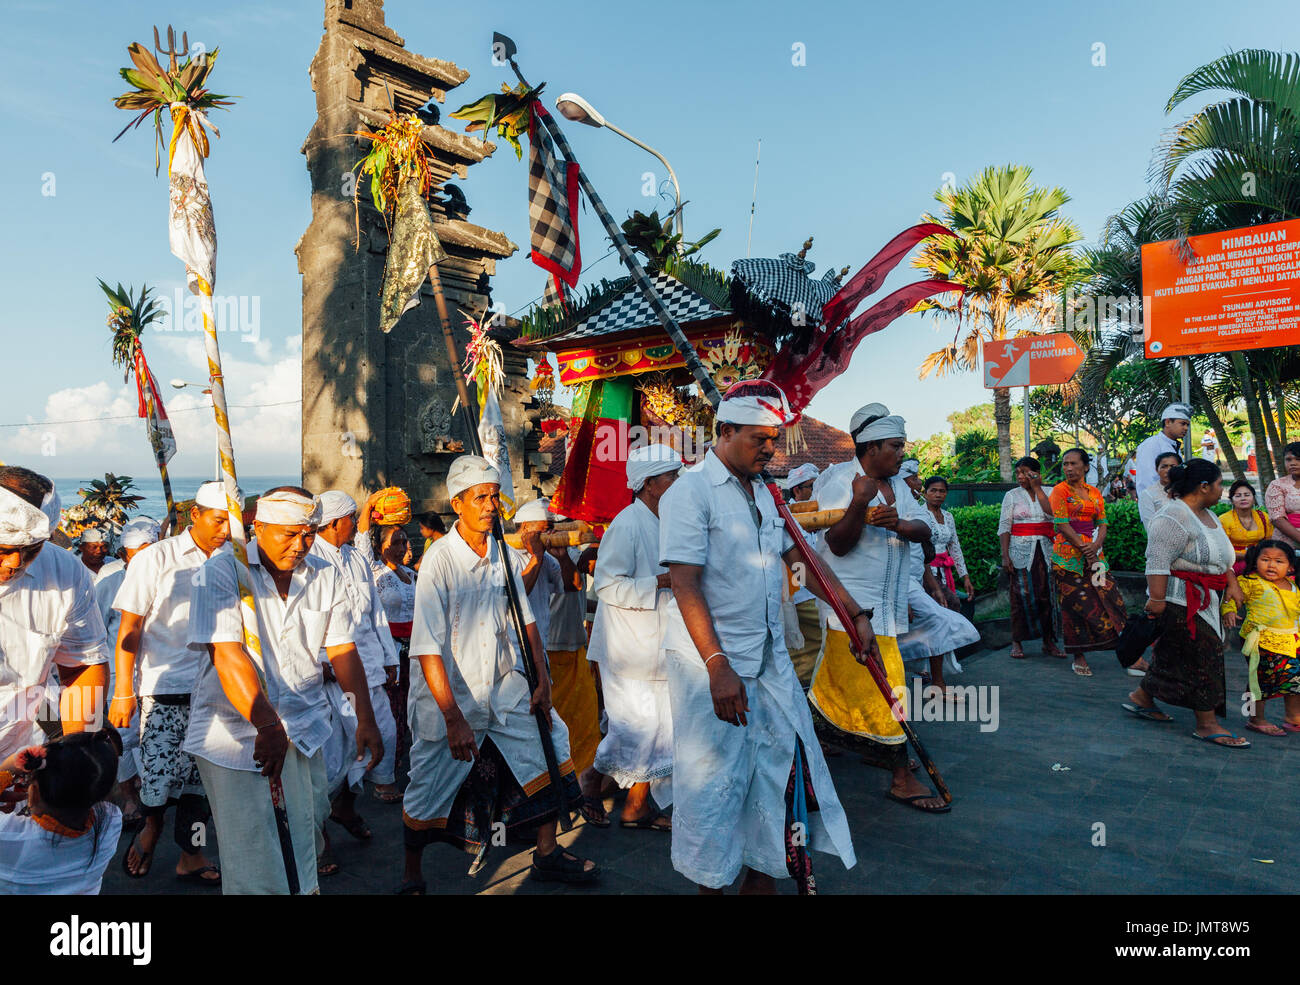 Bali, Indonesia - March 07, 2016: Balinese people in traditional clothes carry jempana or wooden litter at the processionStock Photo